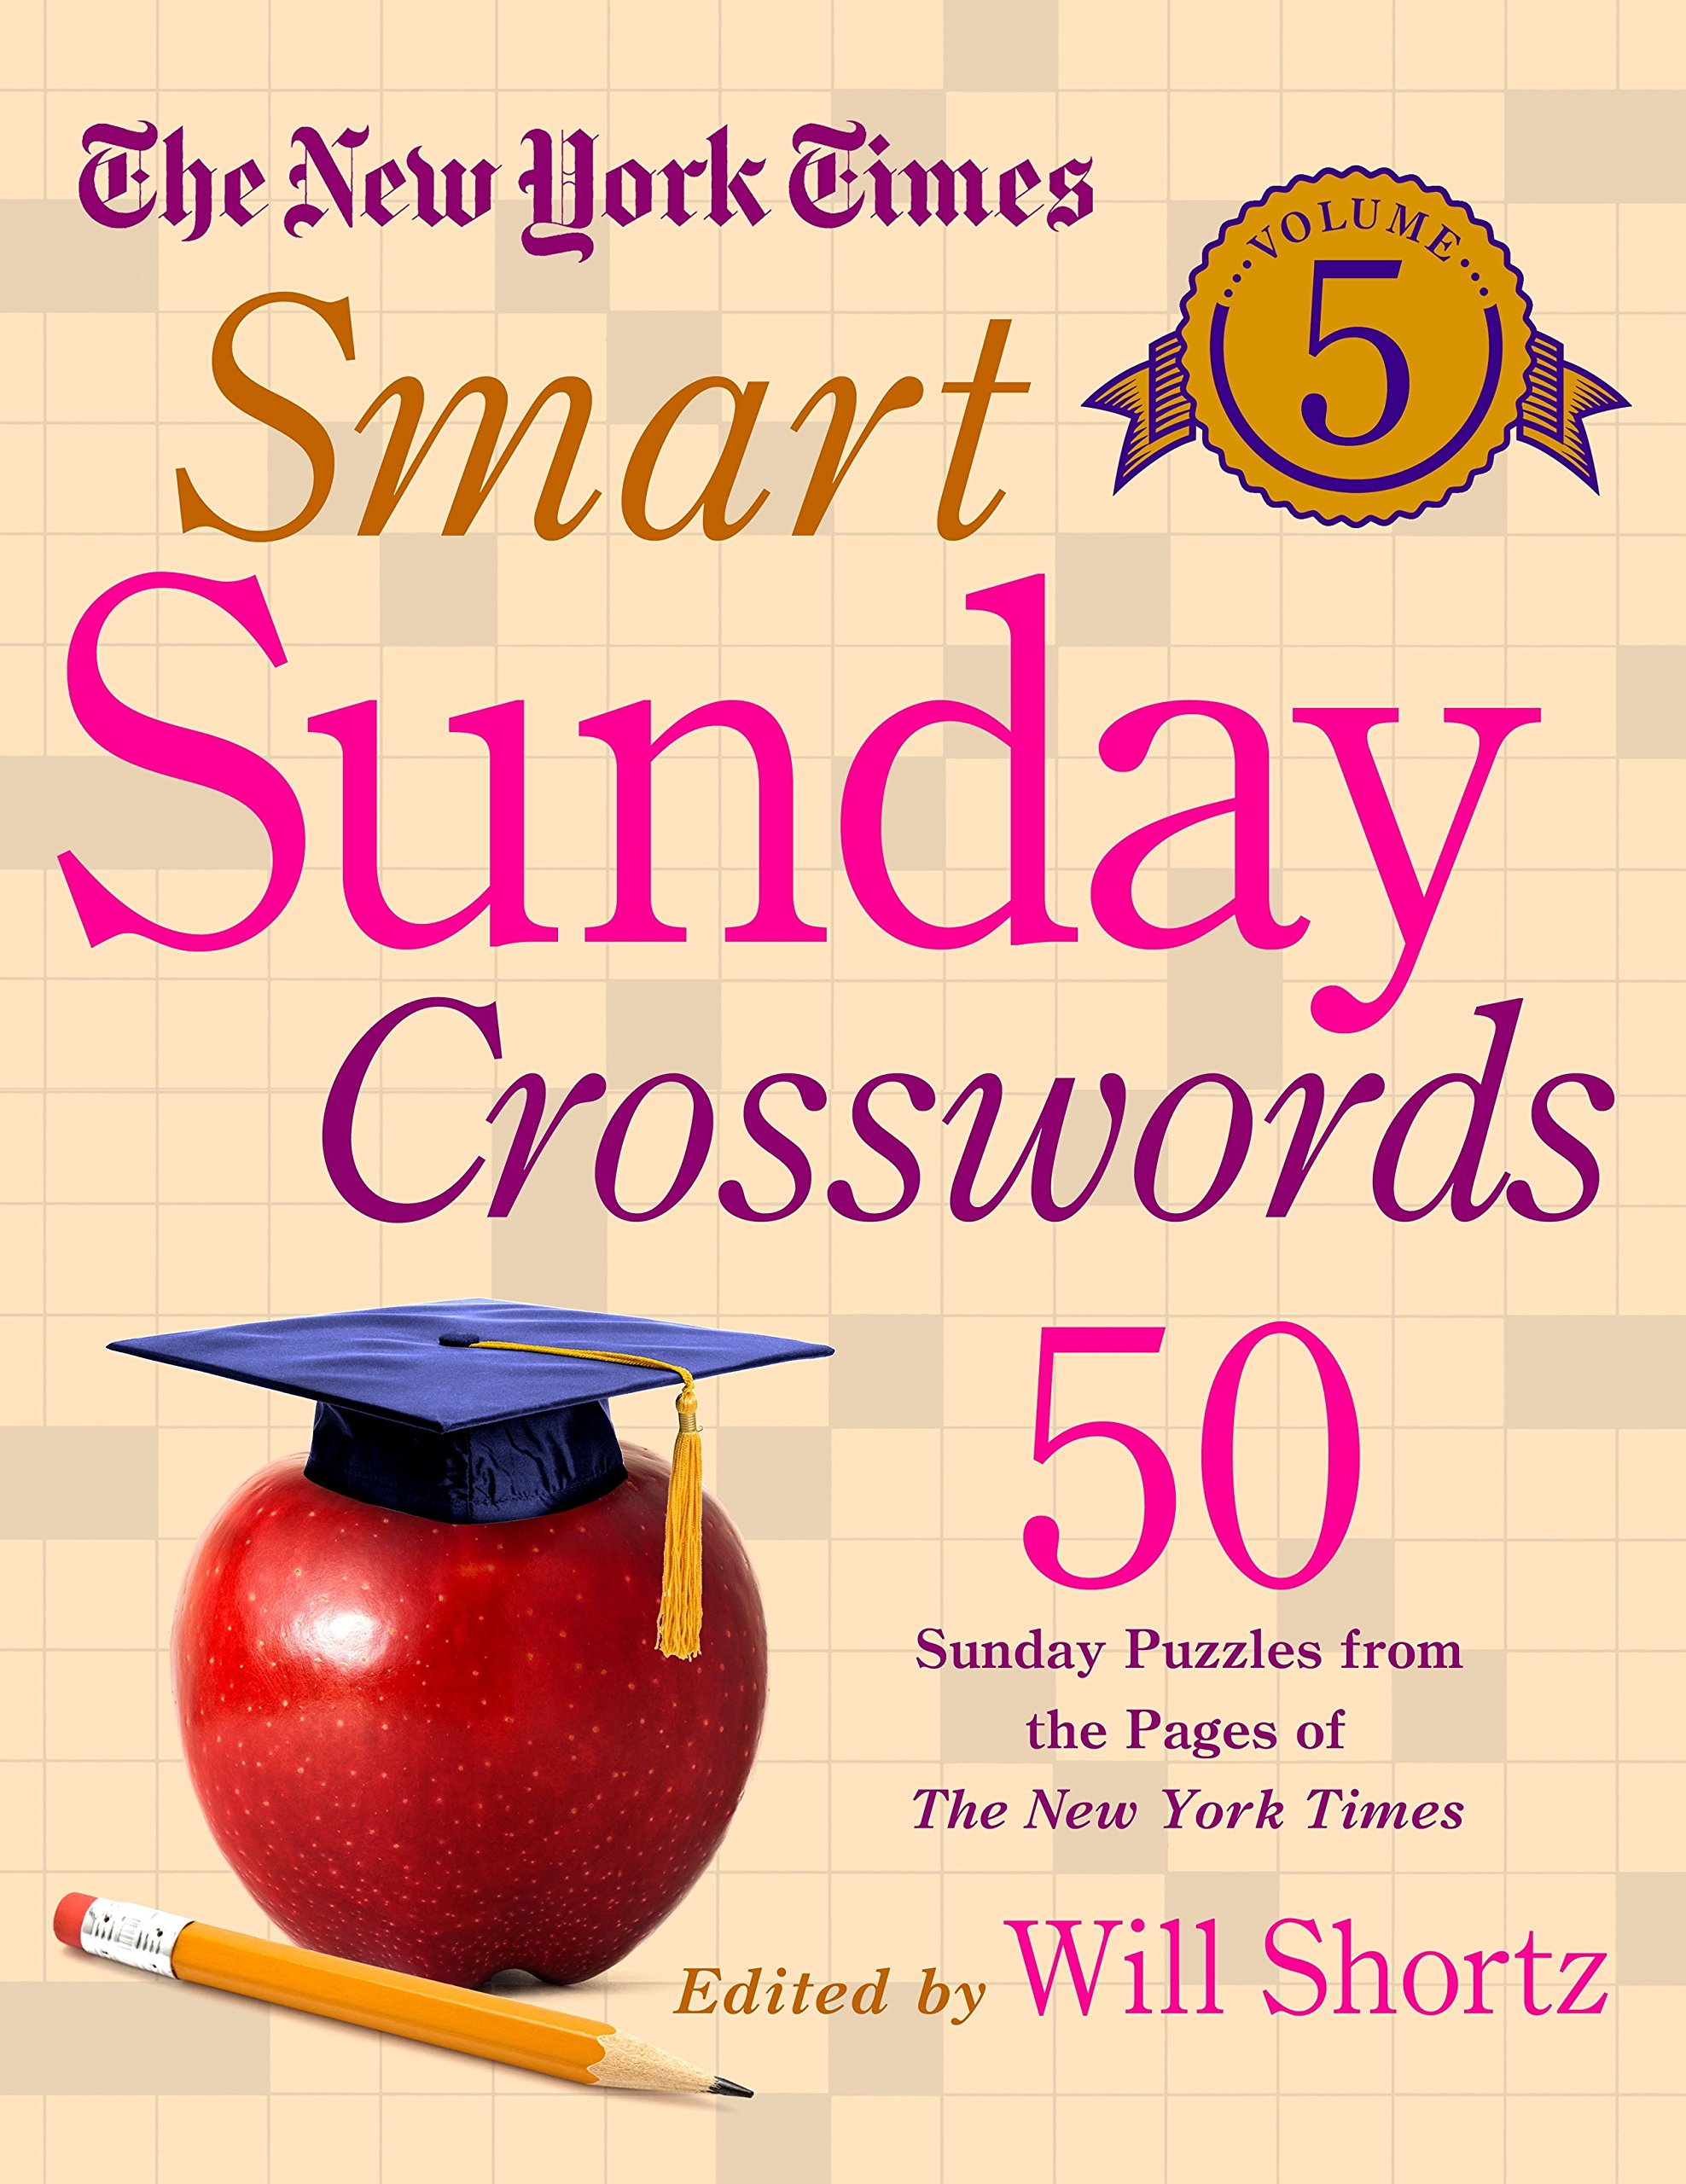 The New York Times Smart Sunday Crosswords Volume 5: 50 Sunday Puzzles from the Pages of The New York Times PDF ePub ebook